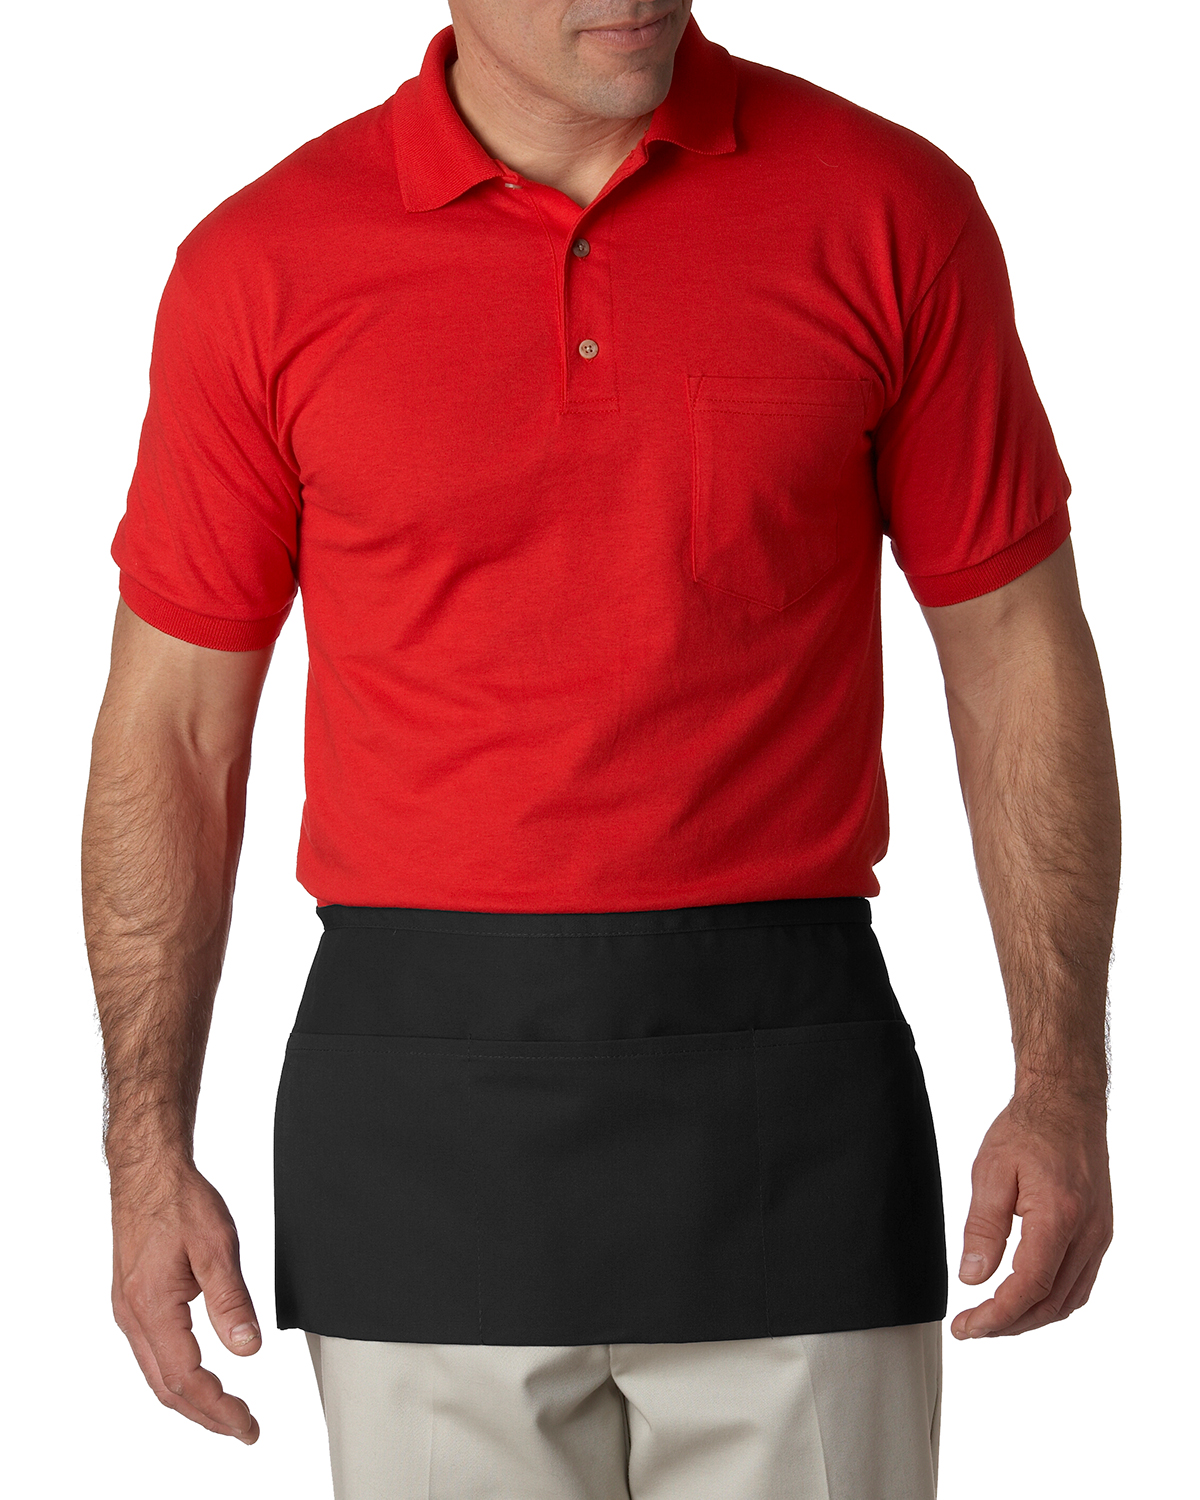 UltraClub 8203 Unisex 3-Pocket Waist Apron at GotApparel